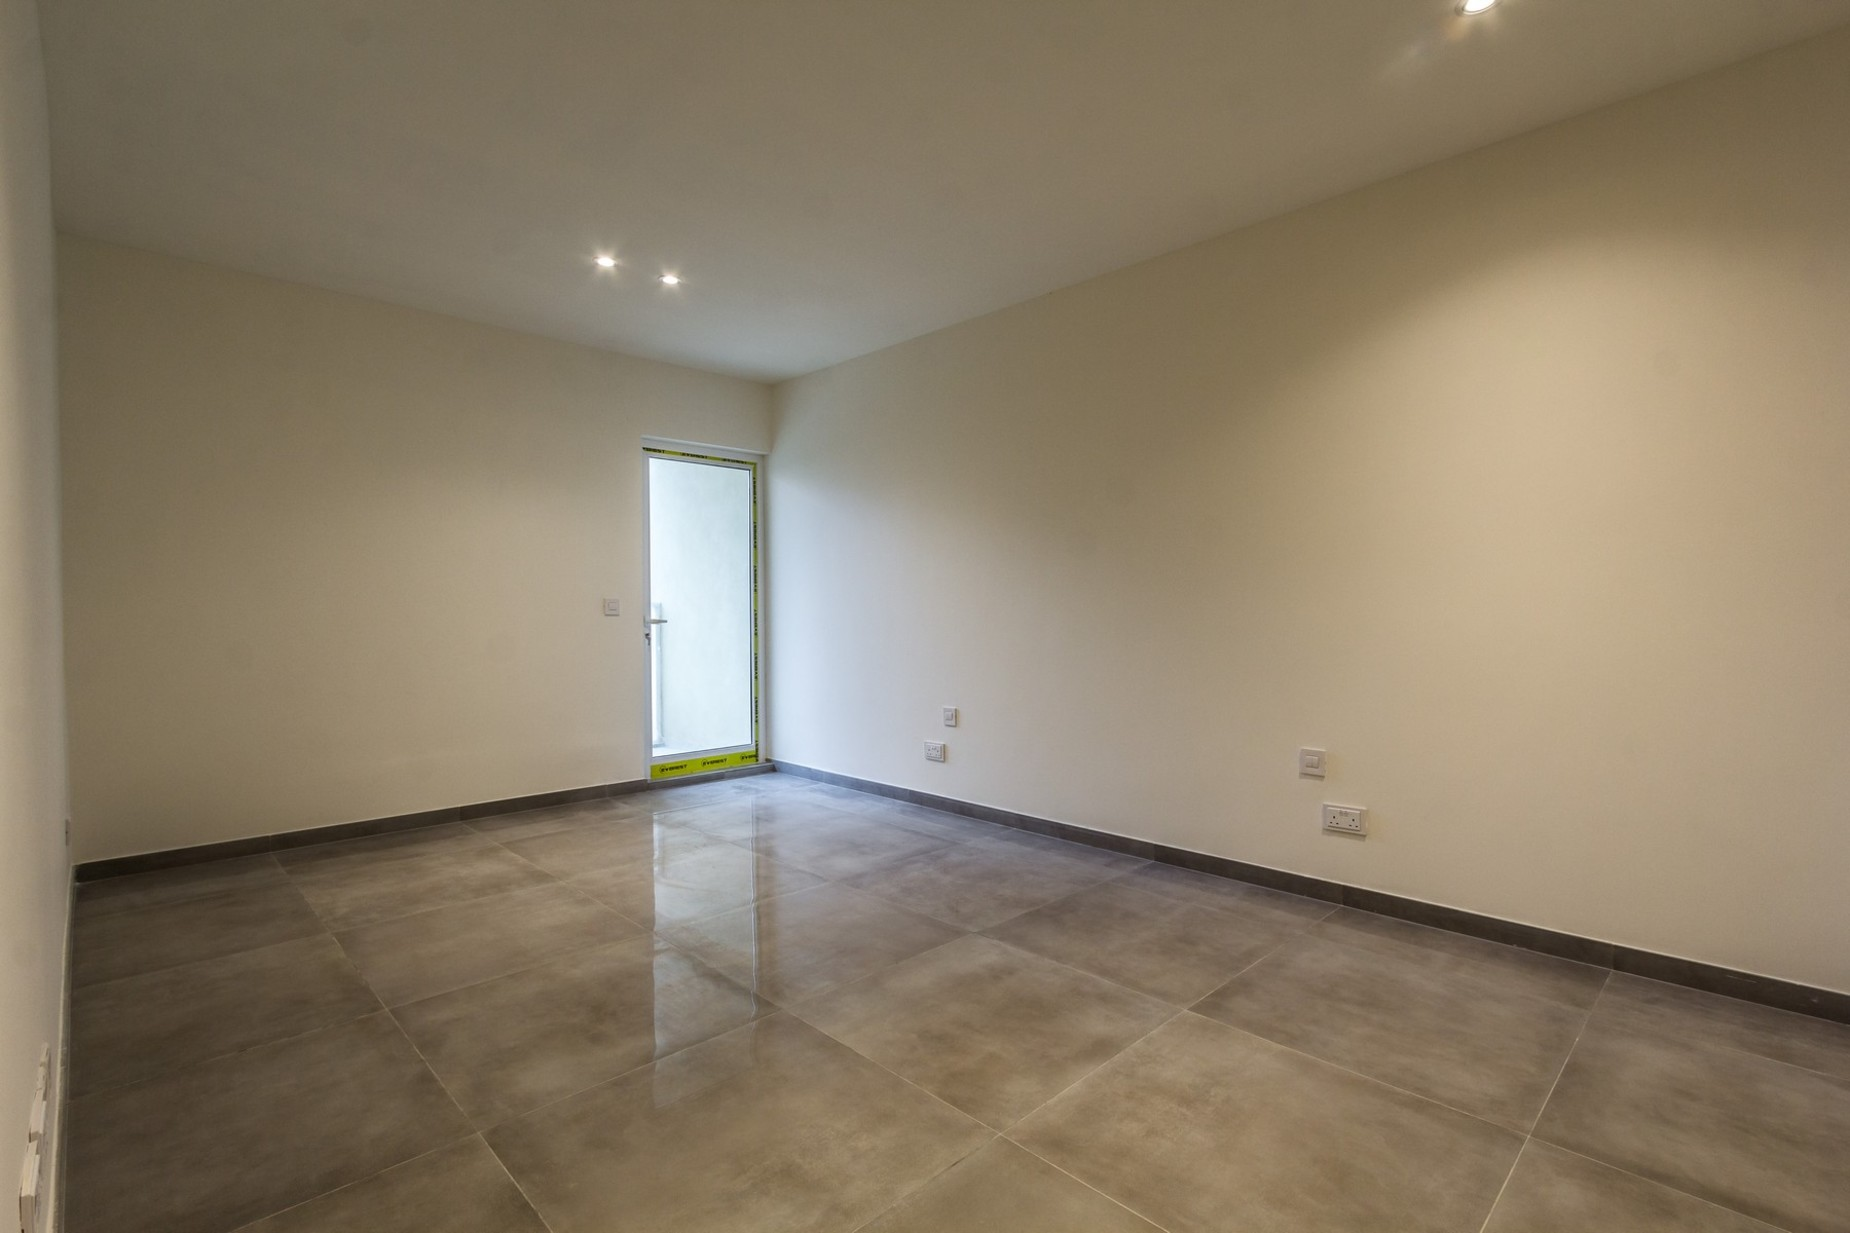 3 bed Apartment For Sale in St Paul's Bay, St Paul's Bay - thumb 9